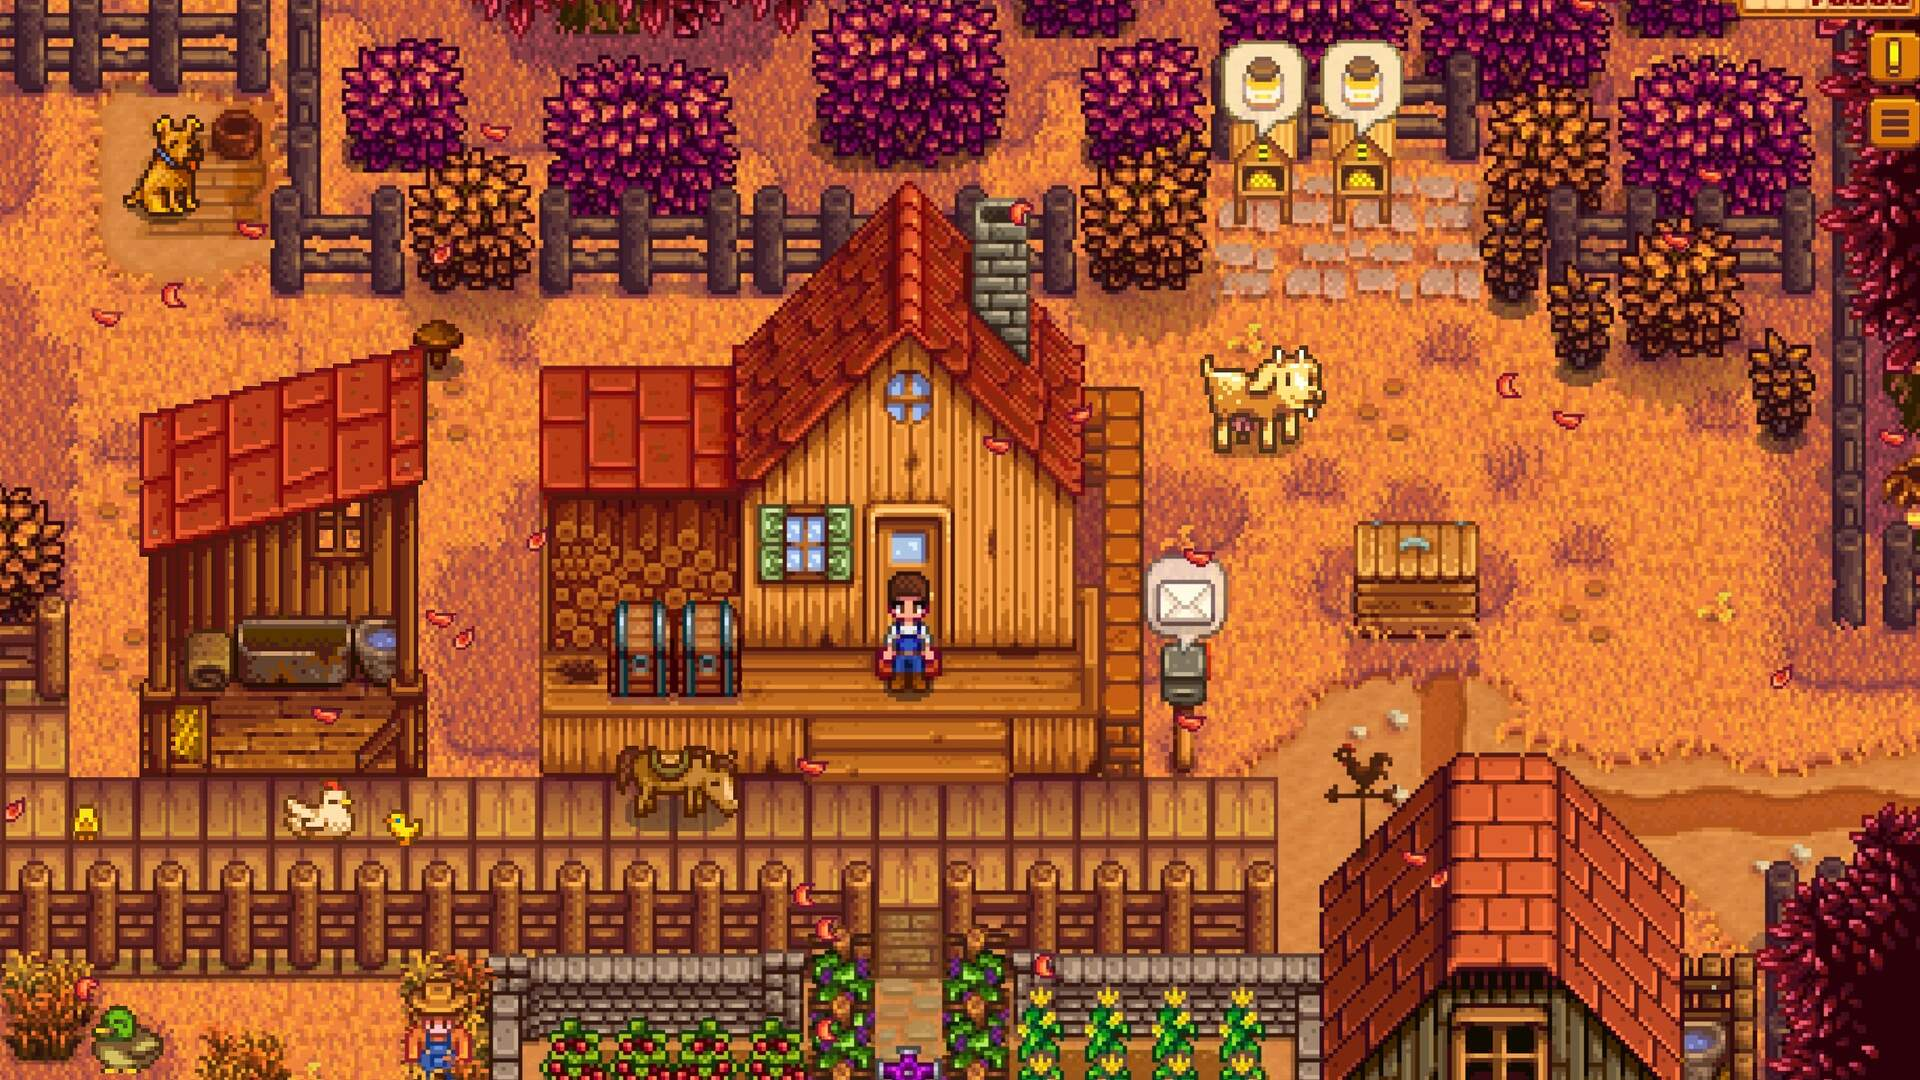 Stardew Valley 1.5 Patch Update Includes a Mysterious Door in Willy's Fish Shop